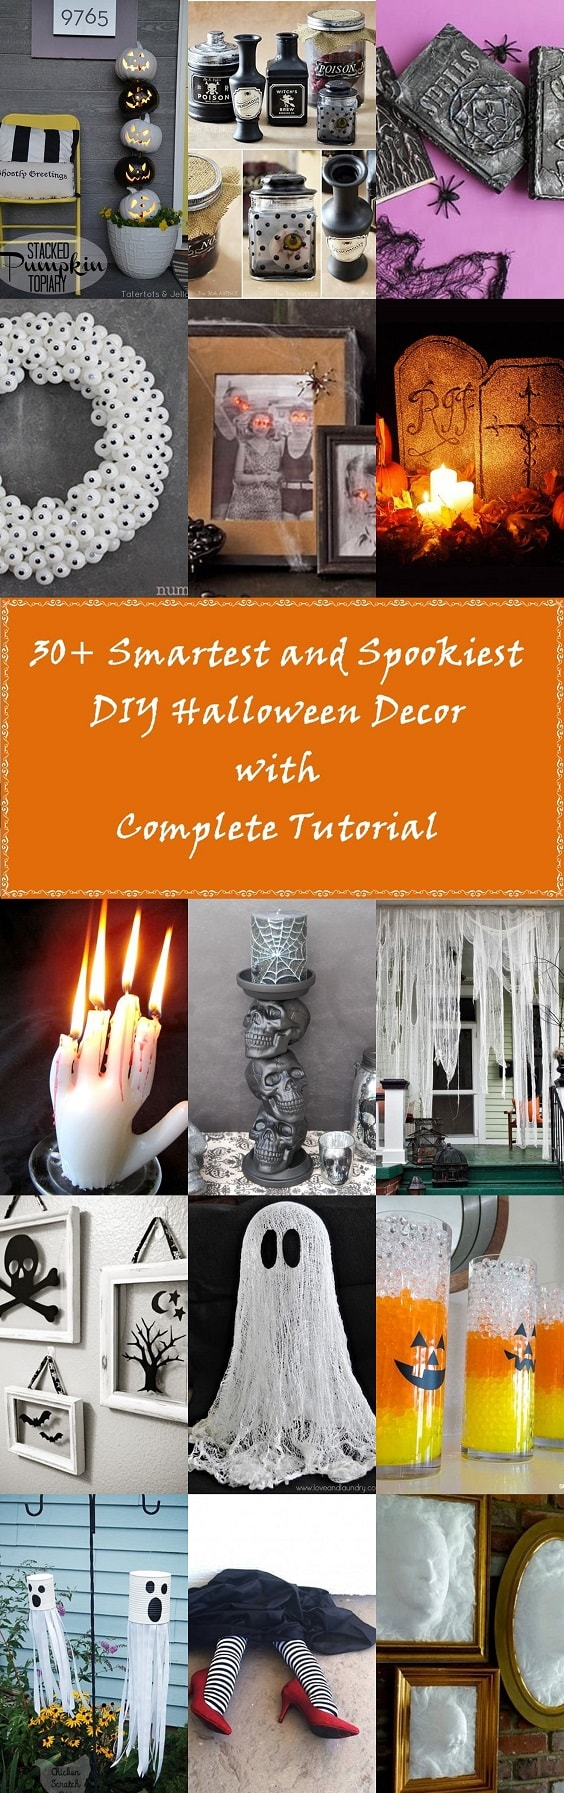 30+ Smartest and Spookiest DIY Halloween Decor with Complete Tutorial